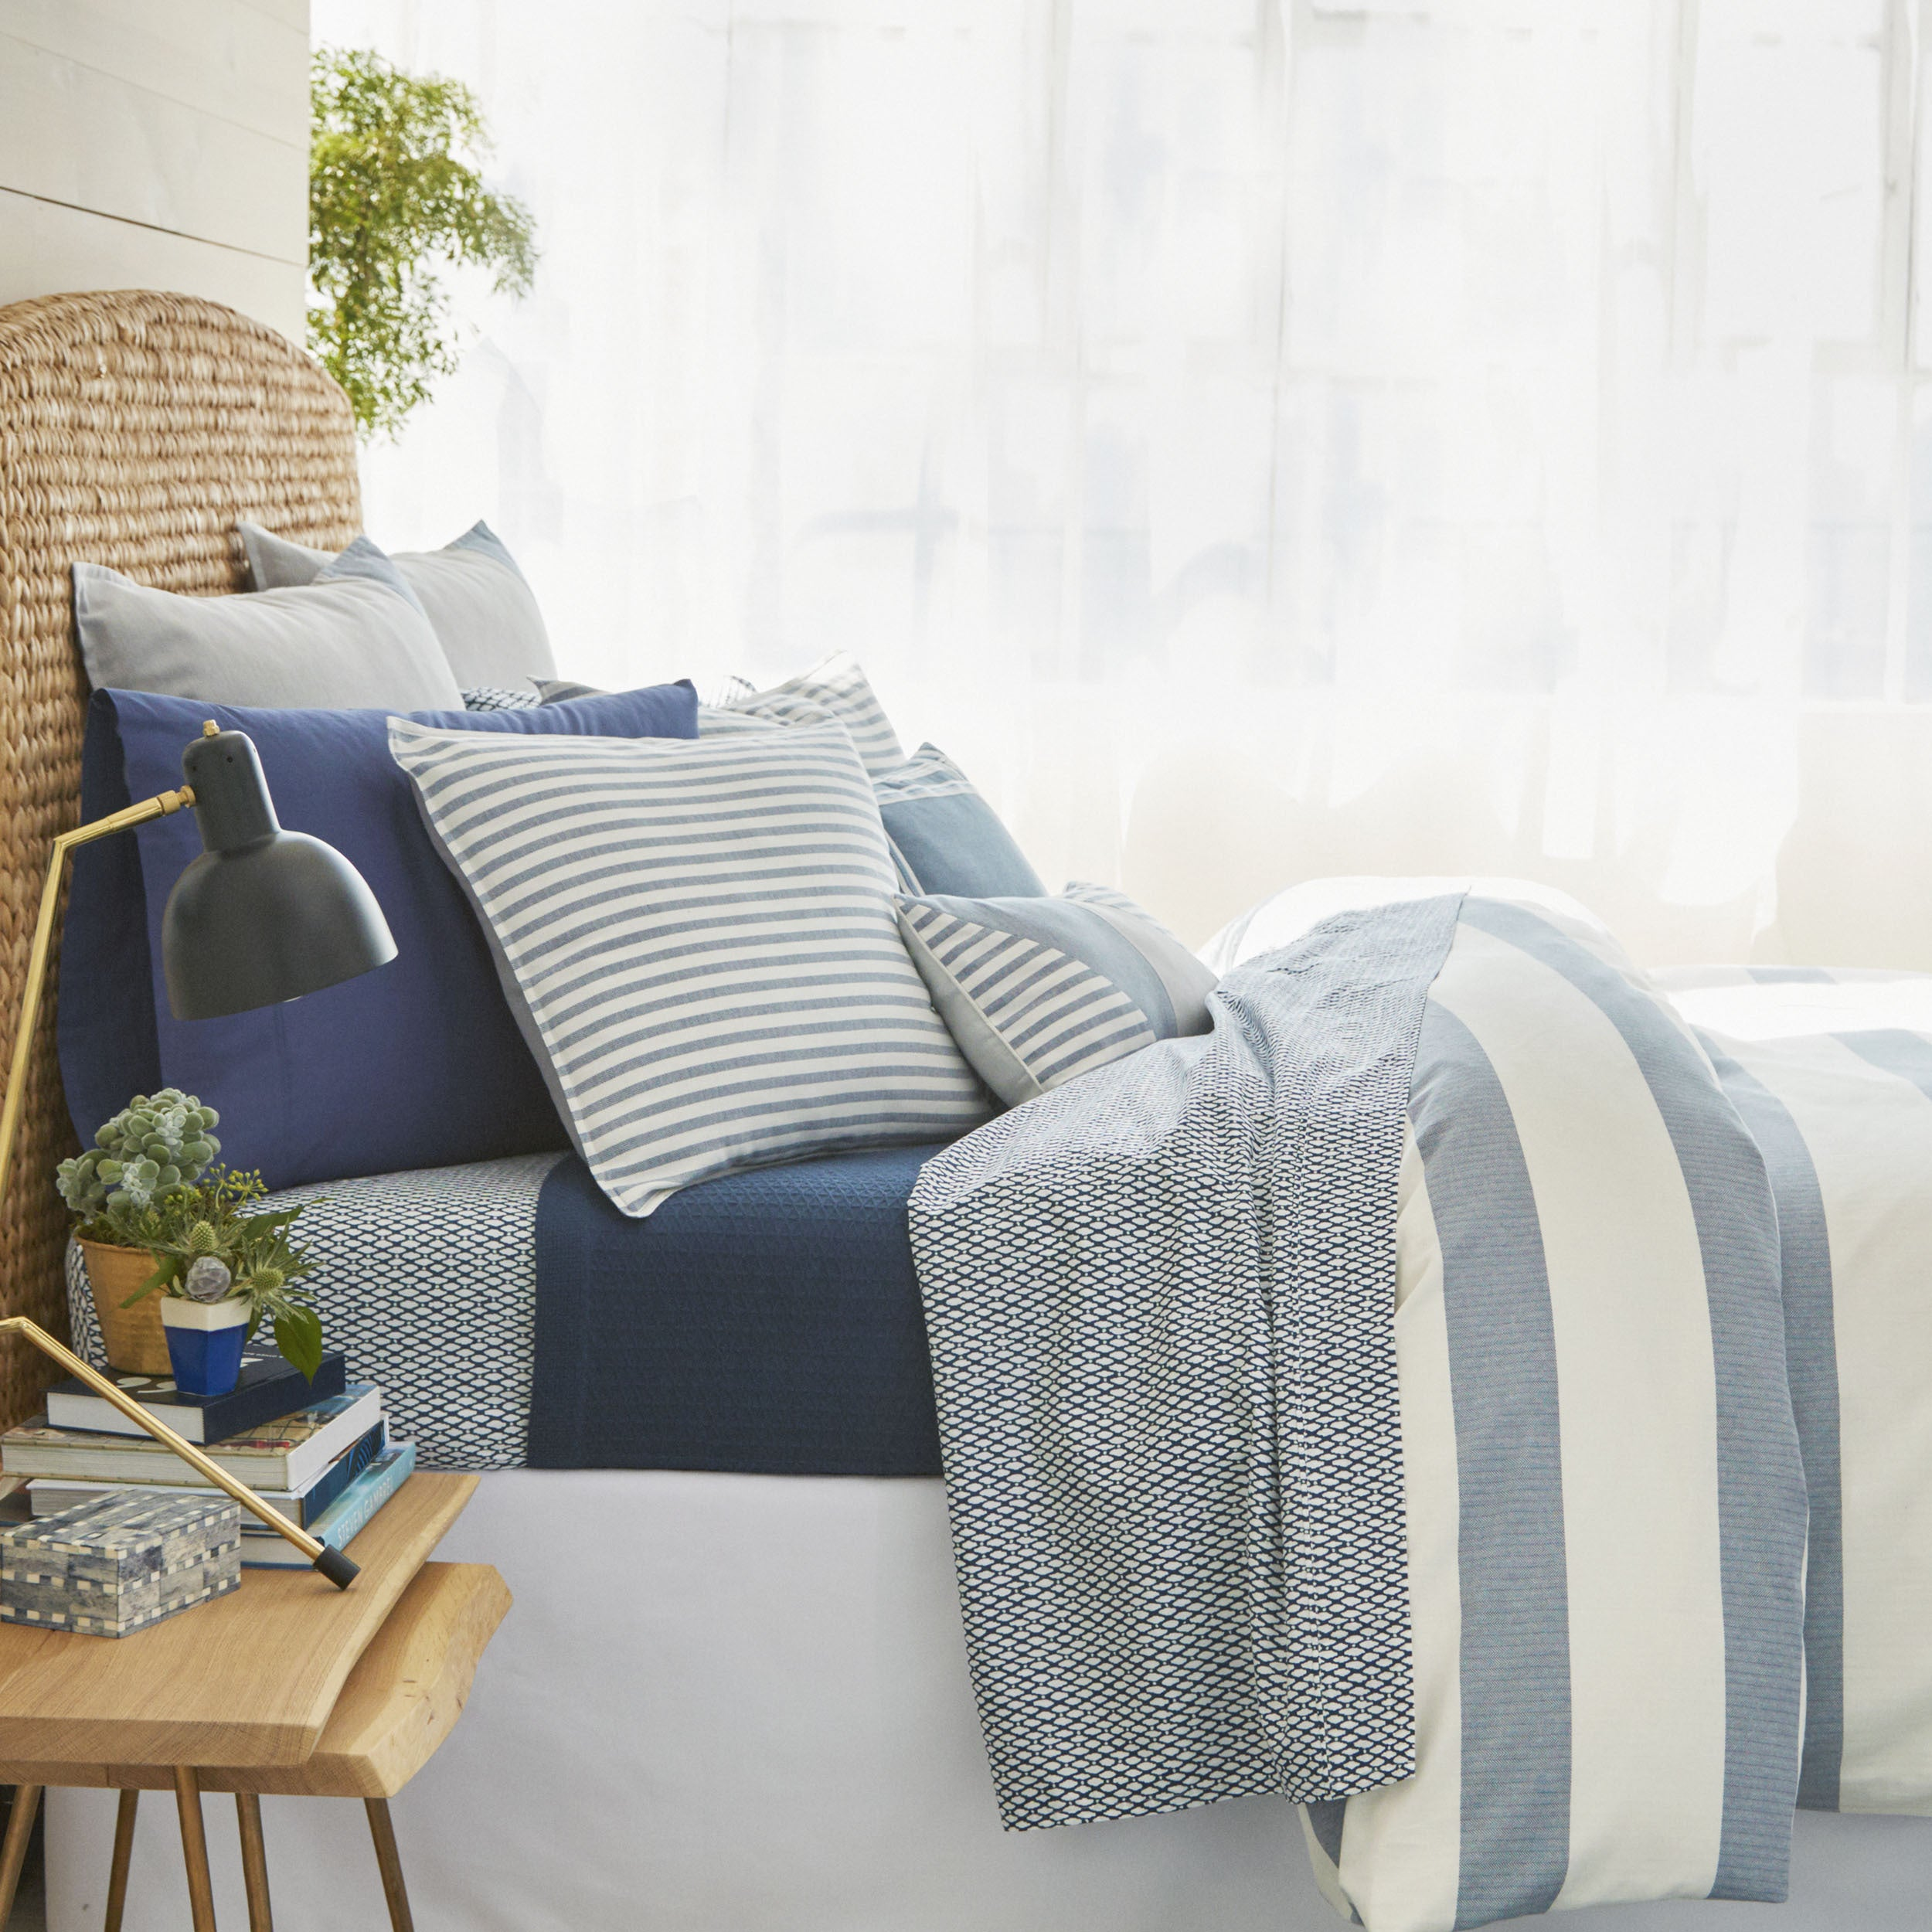 cotton set product bedding comforter bath king hawes overstock nautica sets today free shipping